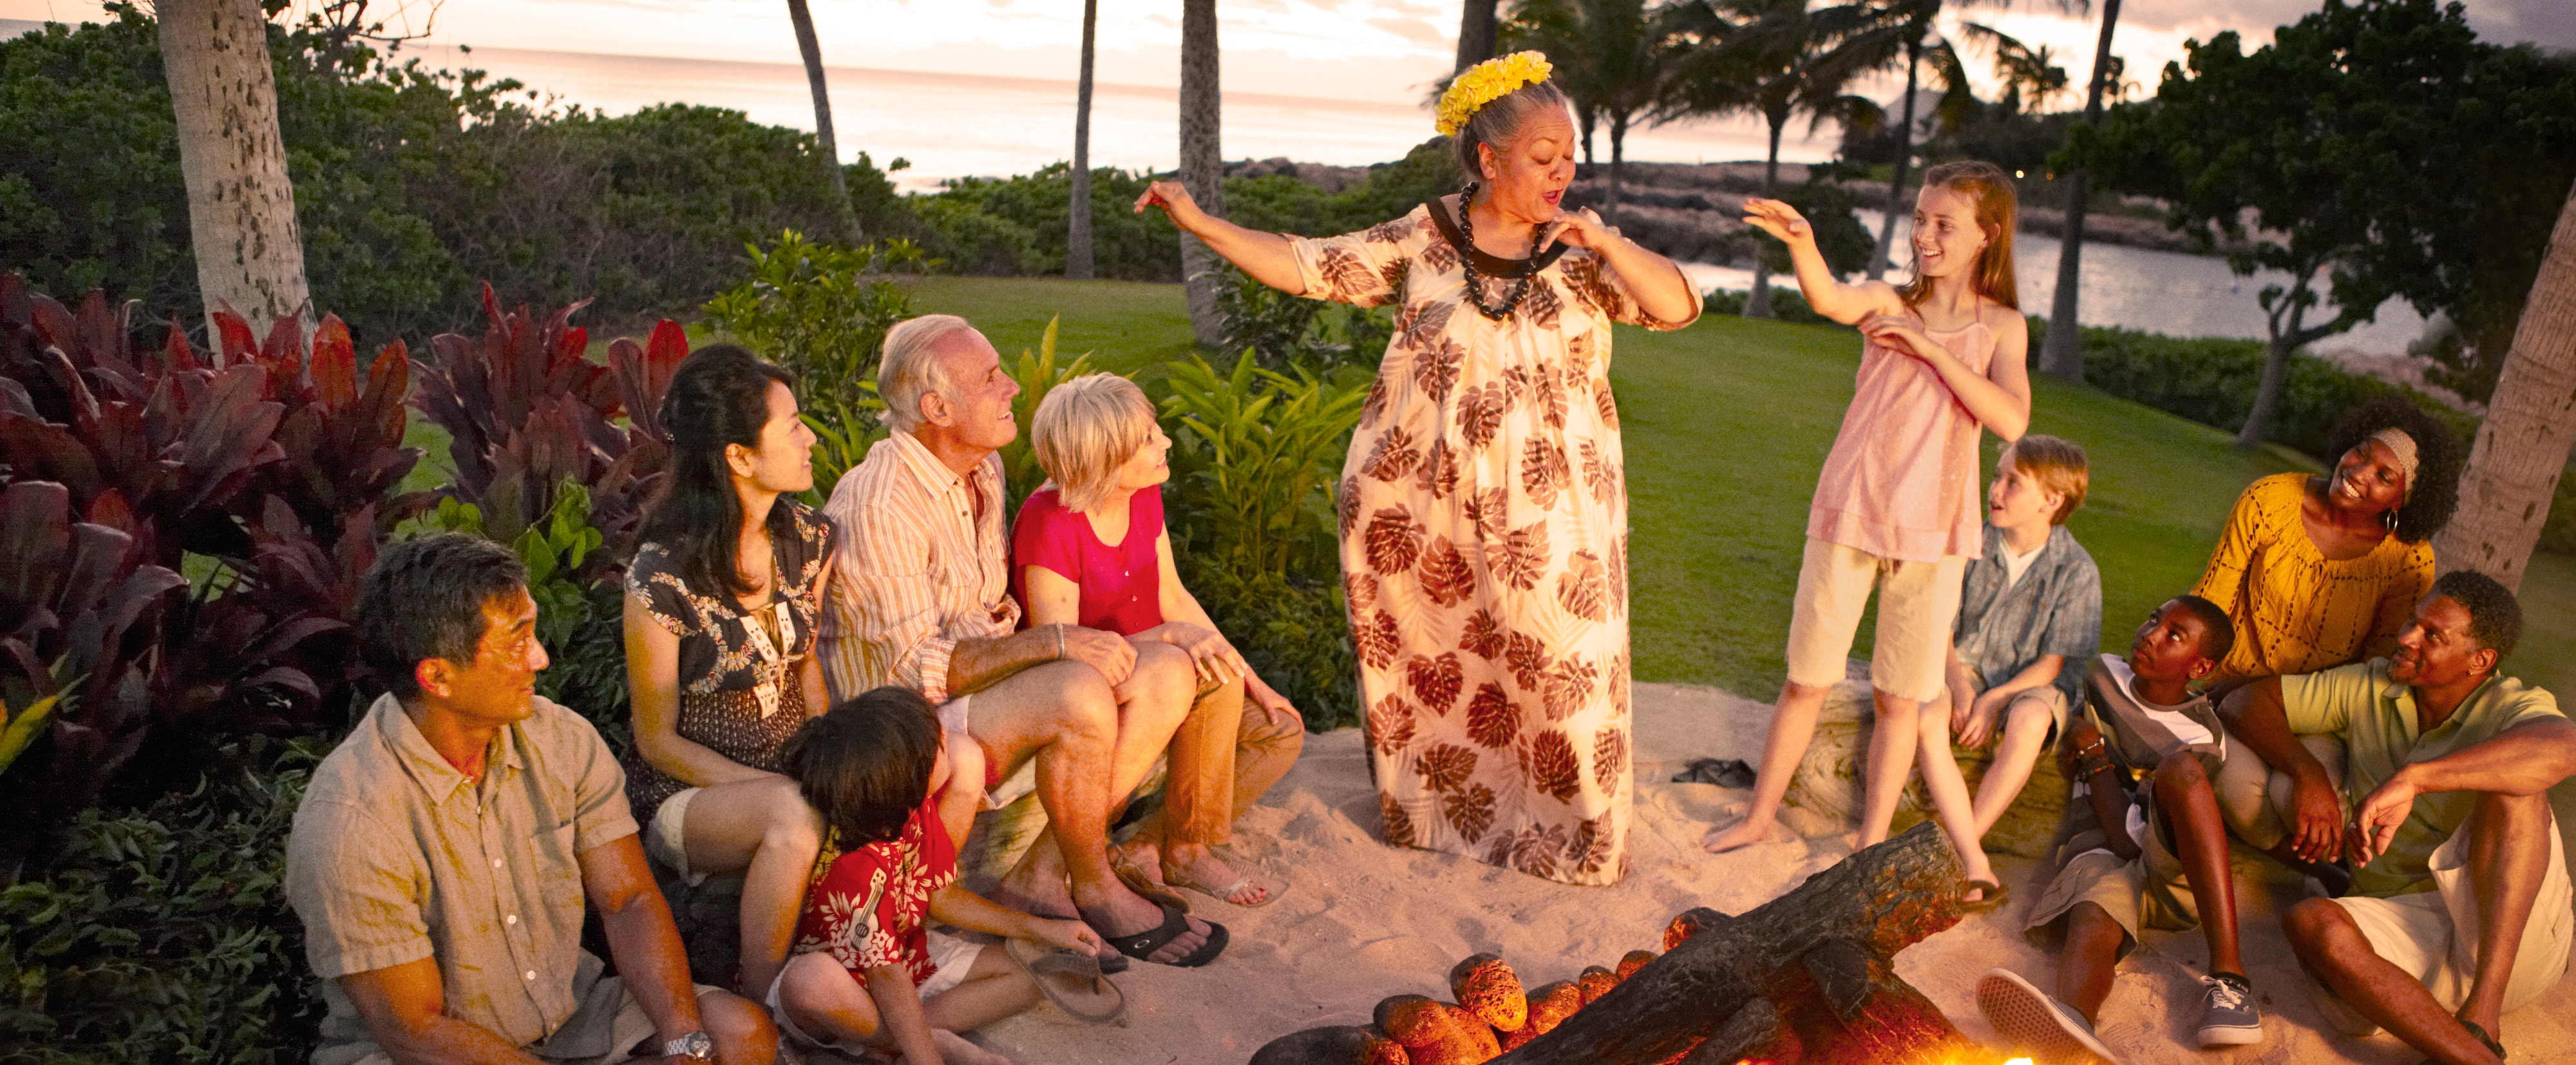 Aunty teaches dance moves during a fireside storytelling activity